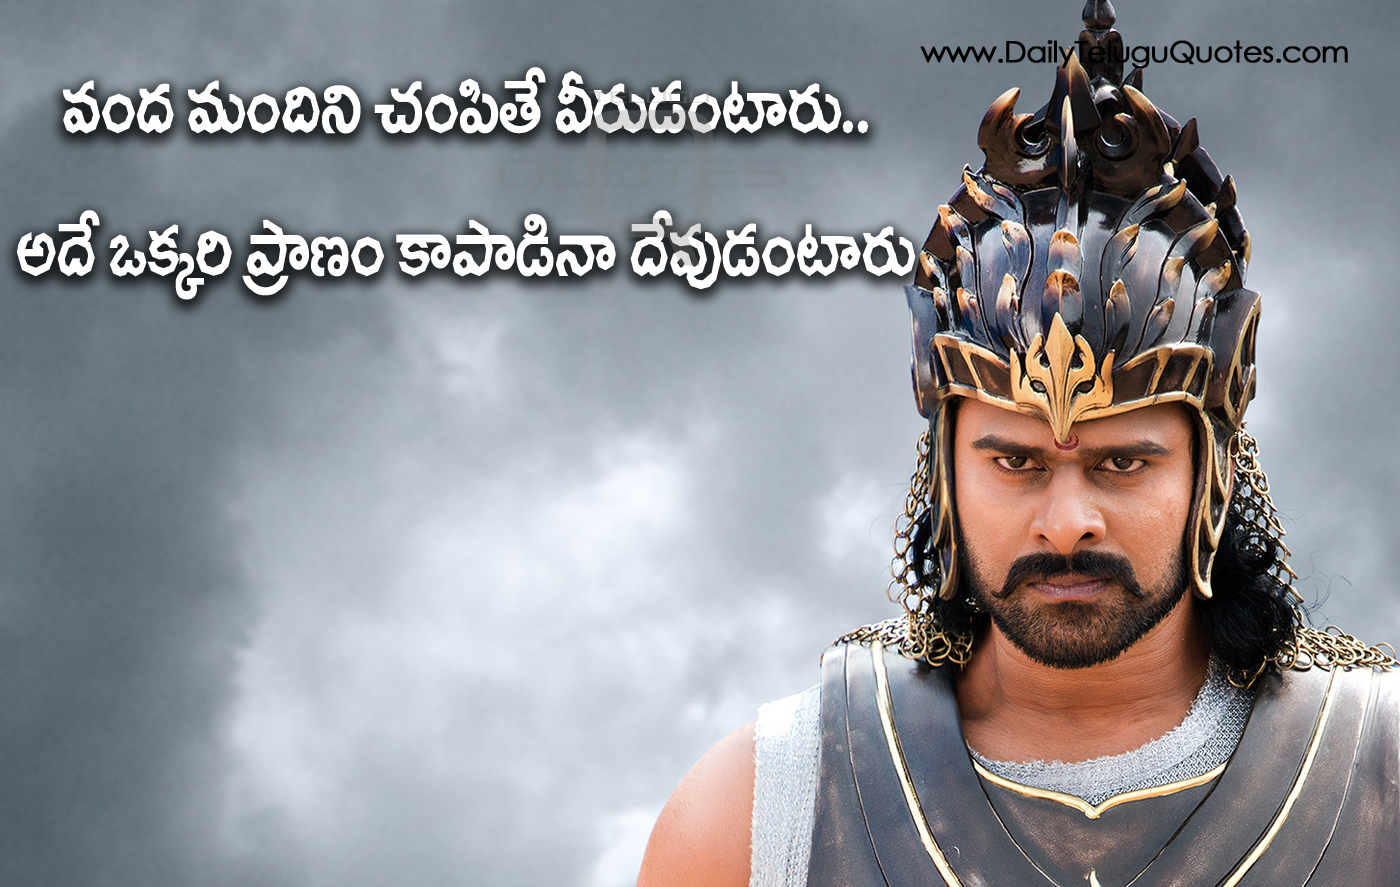 prabhas dialogues and images bahubali movie telugu movie dialogues